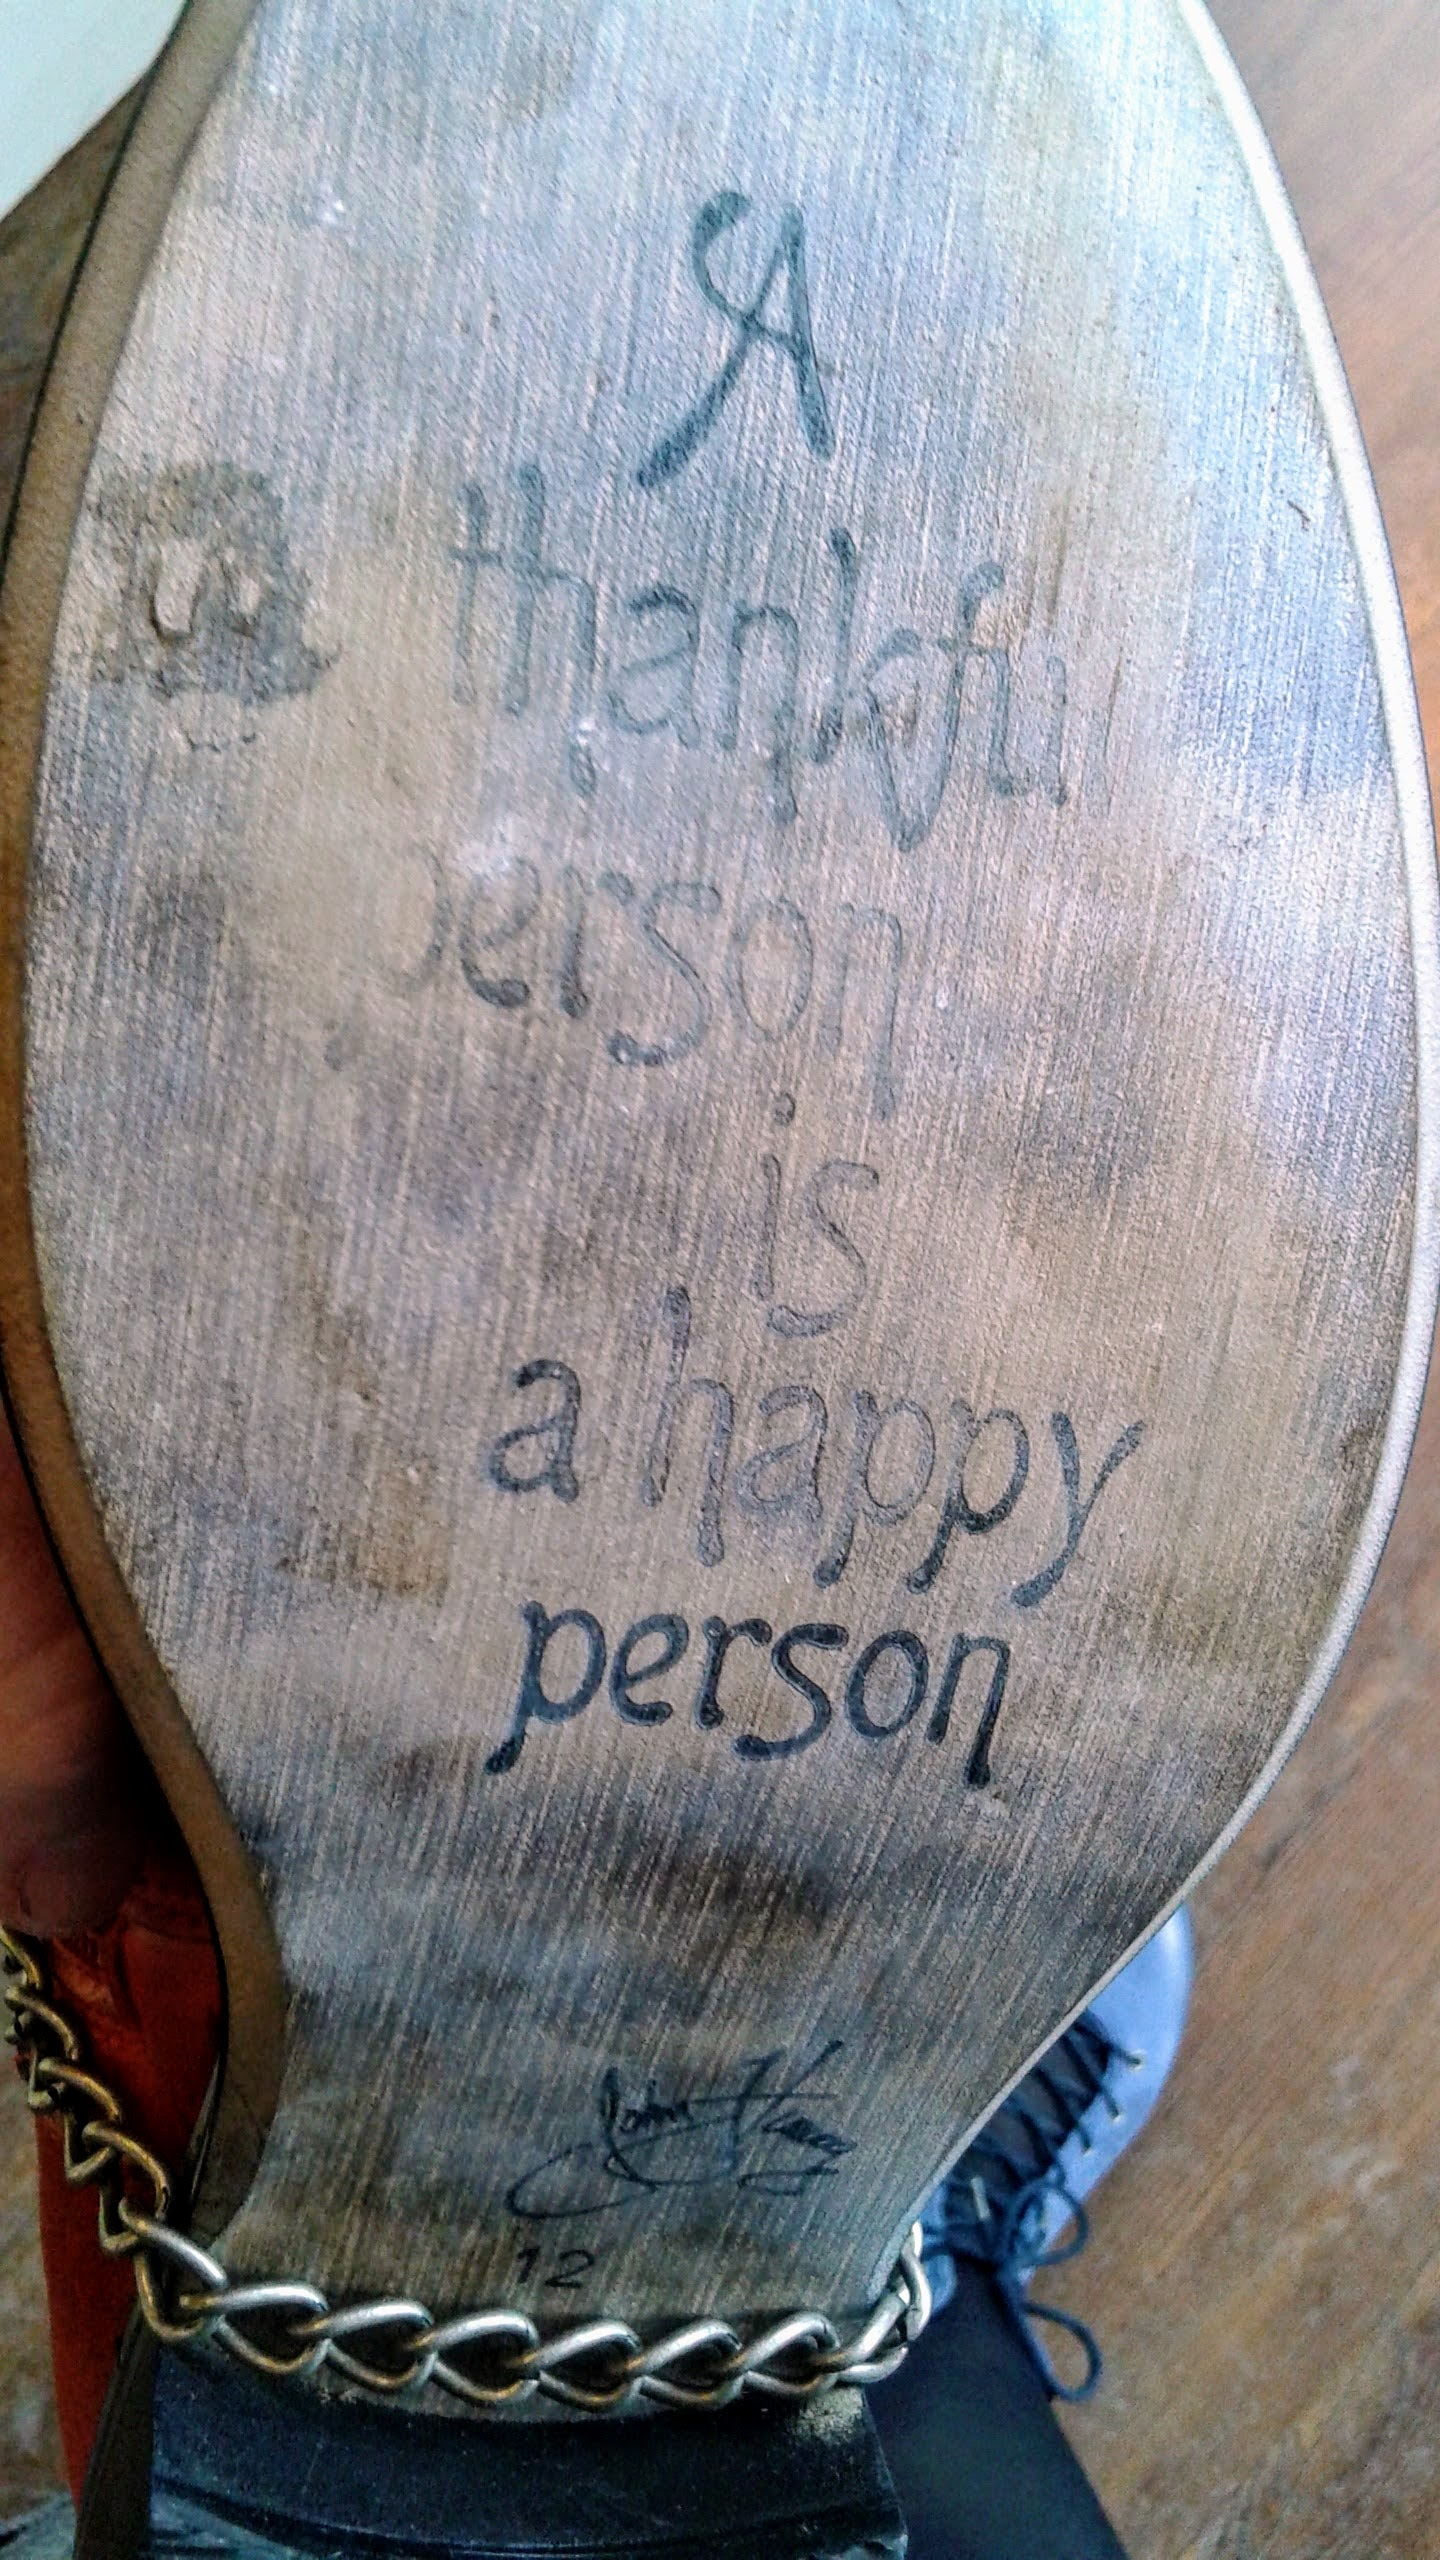 """A thankful person is a happy person"" (Hey, that's my blue Fluevog boot in the background!)"